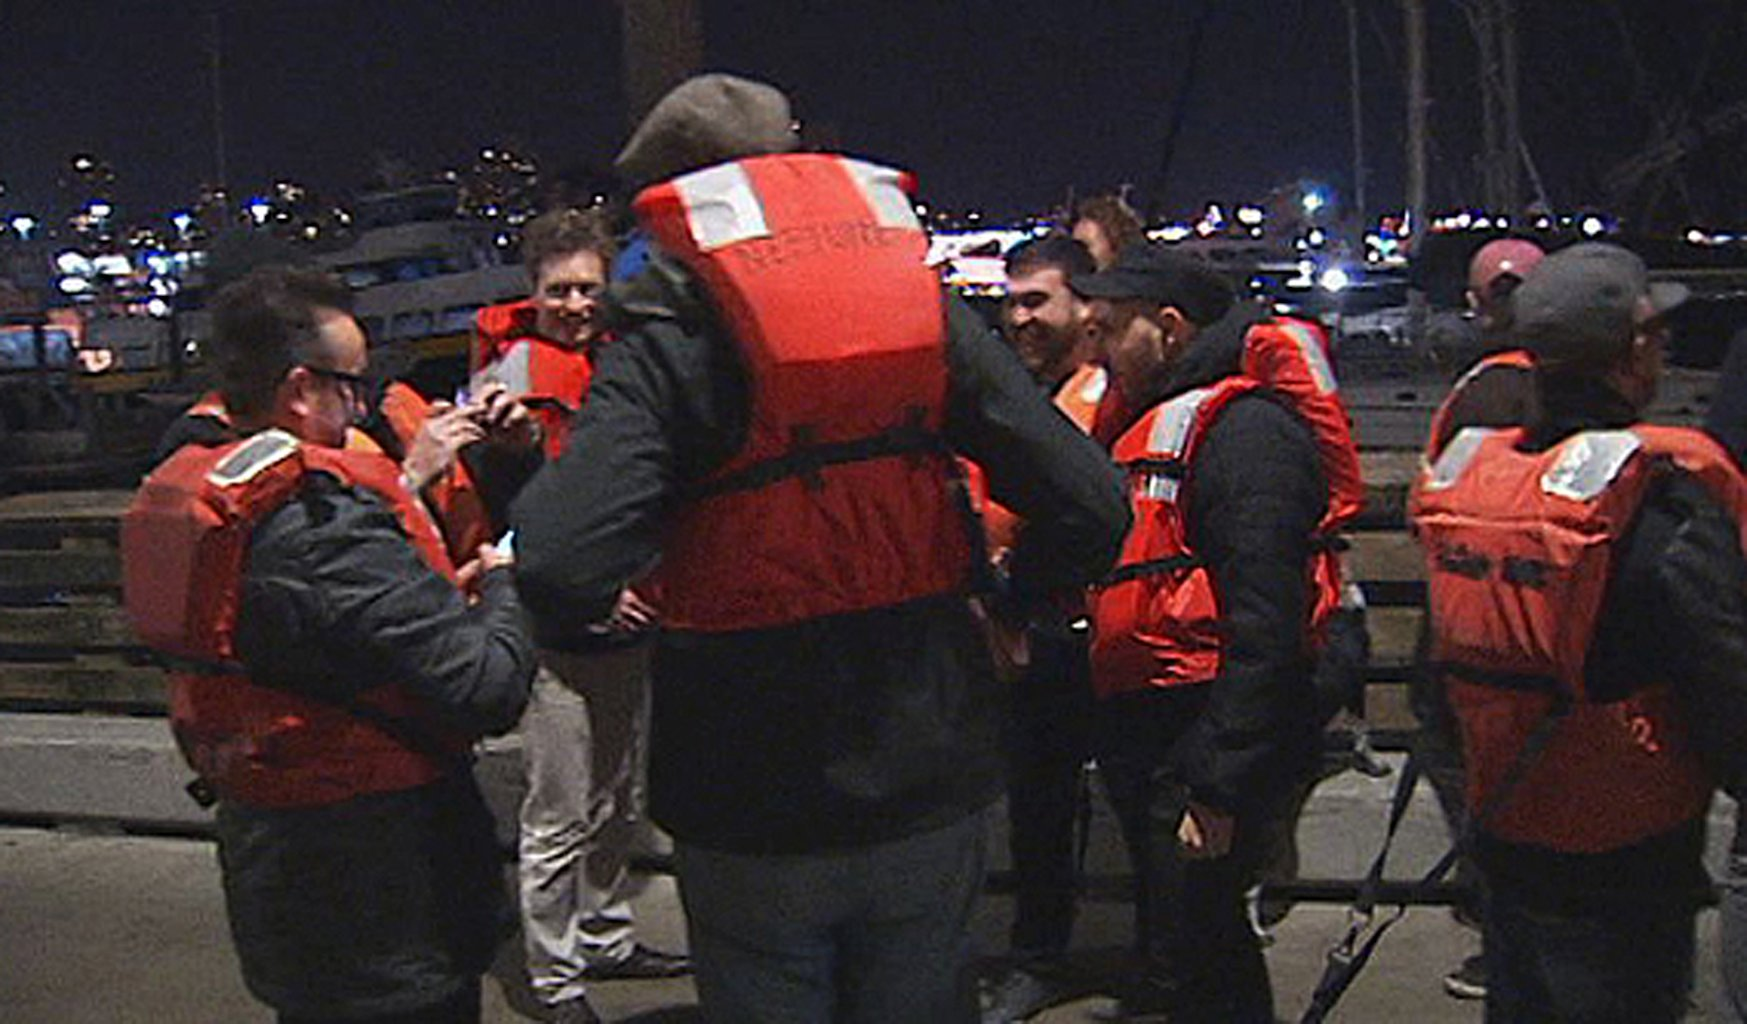 22 rescued passengers on the pier Friday Oct.12, 2012 in San Francisco. A U.S. Coast Guard spokesman said the wine-tasting boat